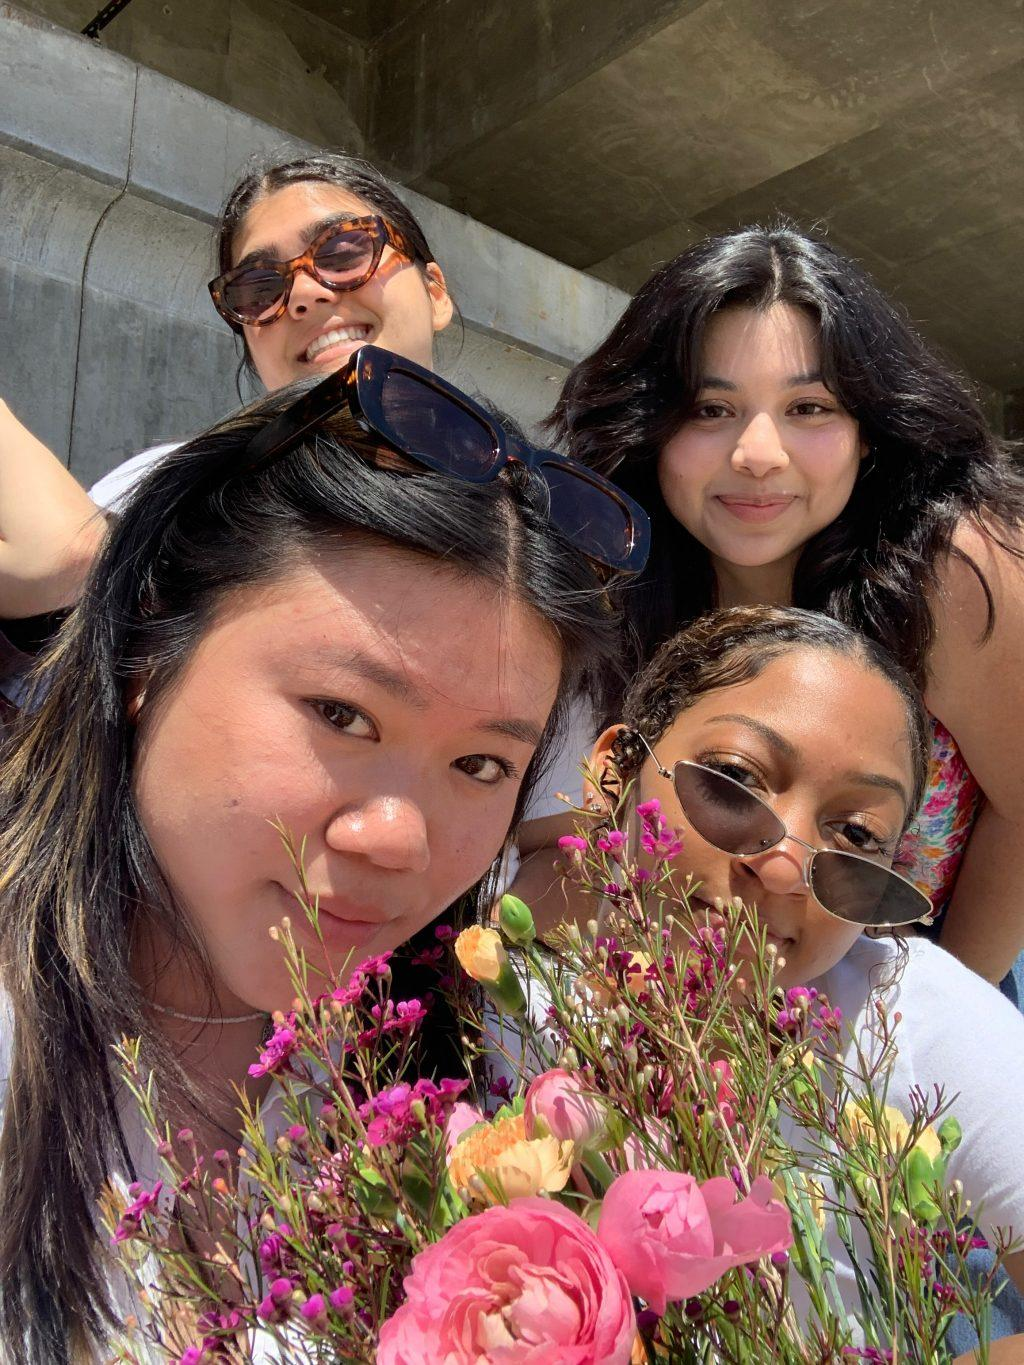 Alpha Omega first-years — (left to right) Serena Woon, Marie McGrath, Yamillah Hurtado, who is a copy editor for the Graphic, and Amani Pearson — have a beach day on Amarillo Beach in Malibu in April. Woon said they tanned at the beach, and it was one of the best days ever.